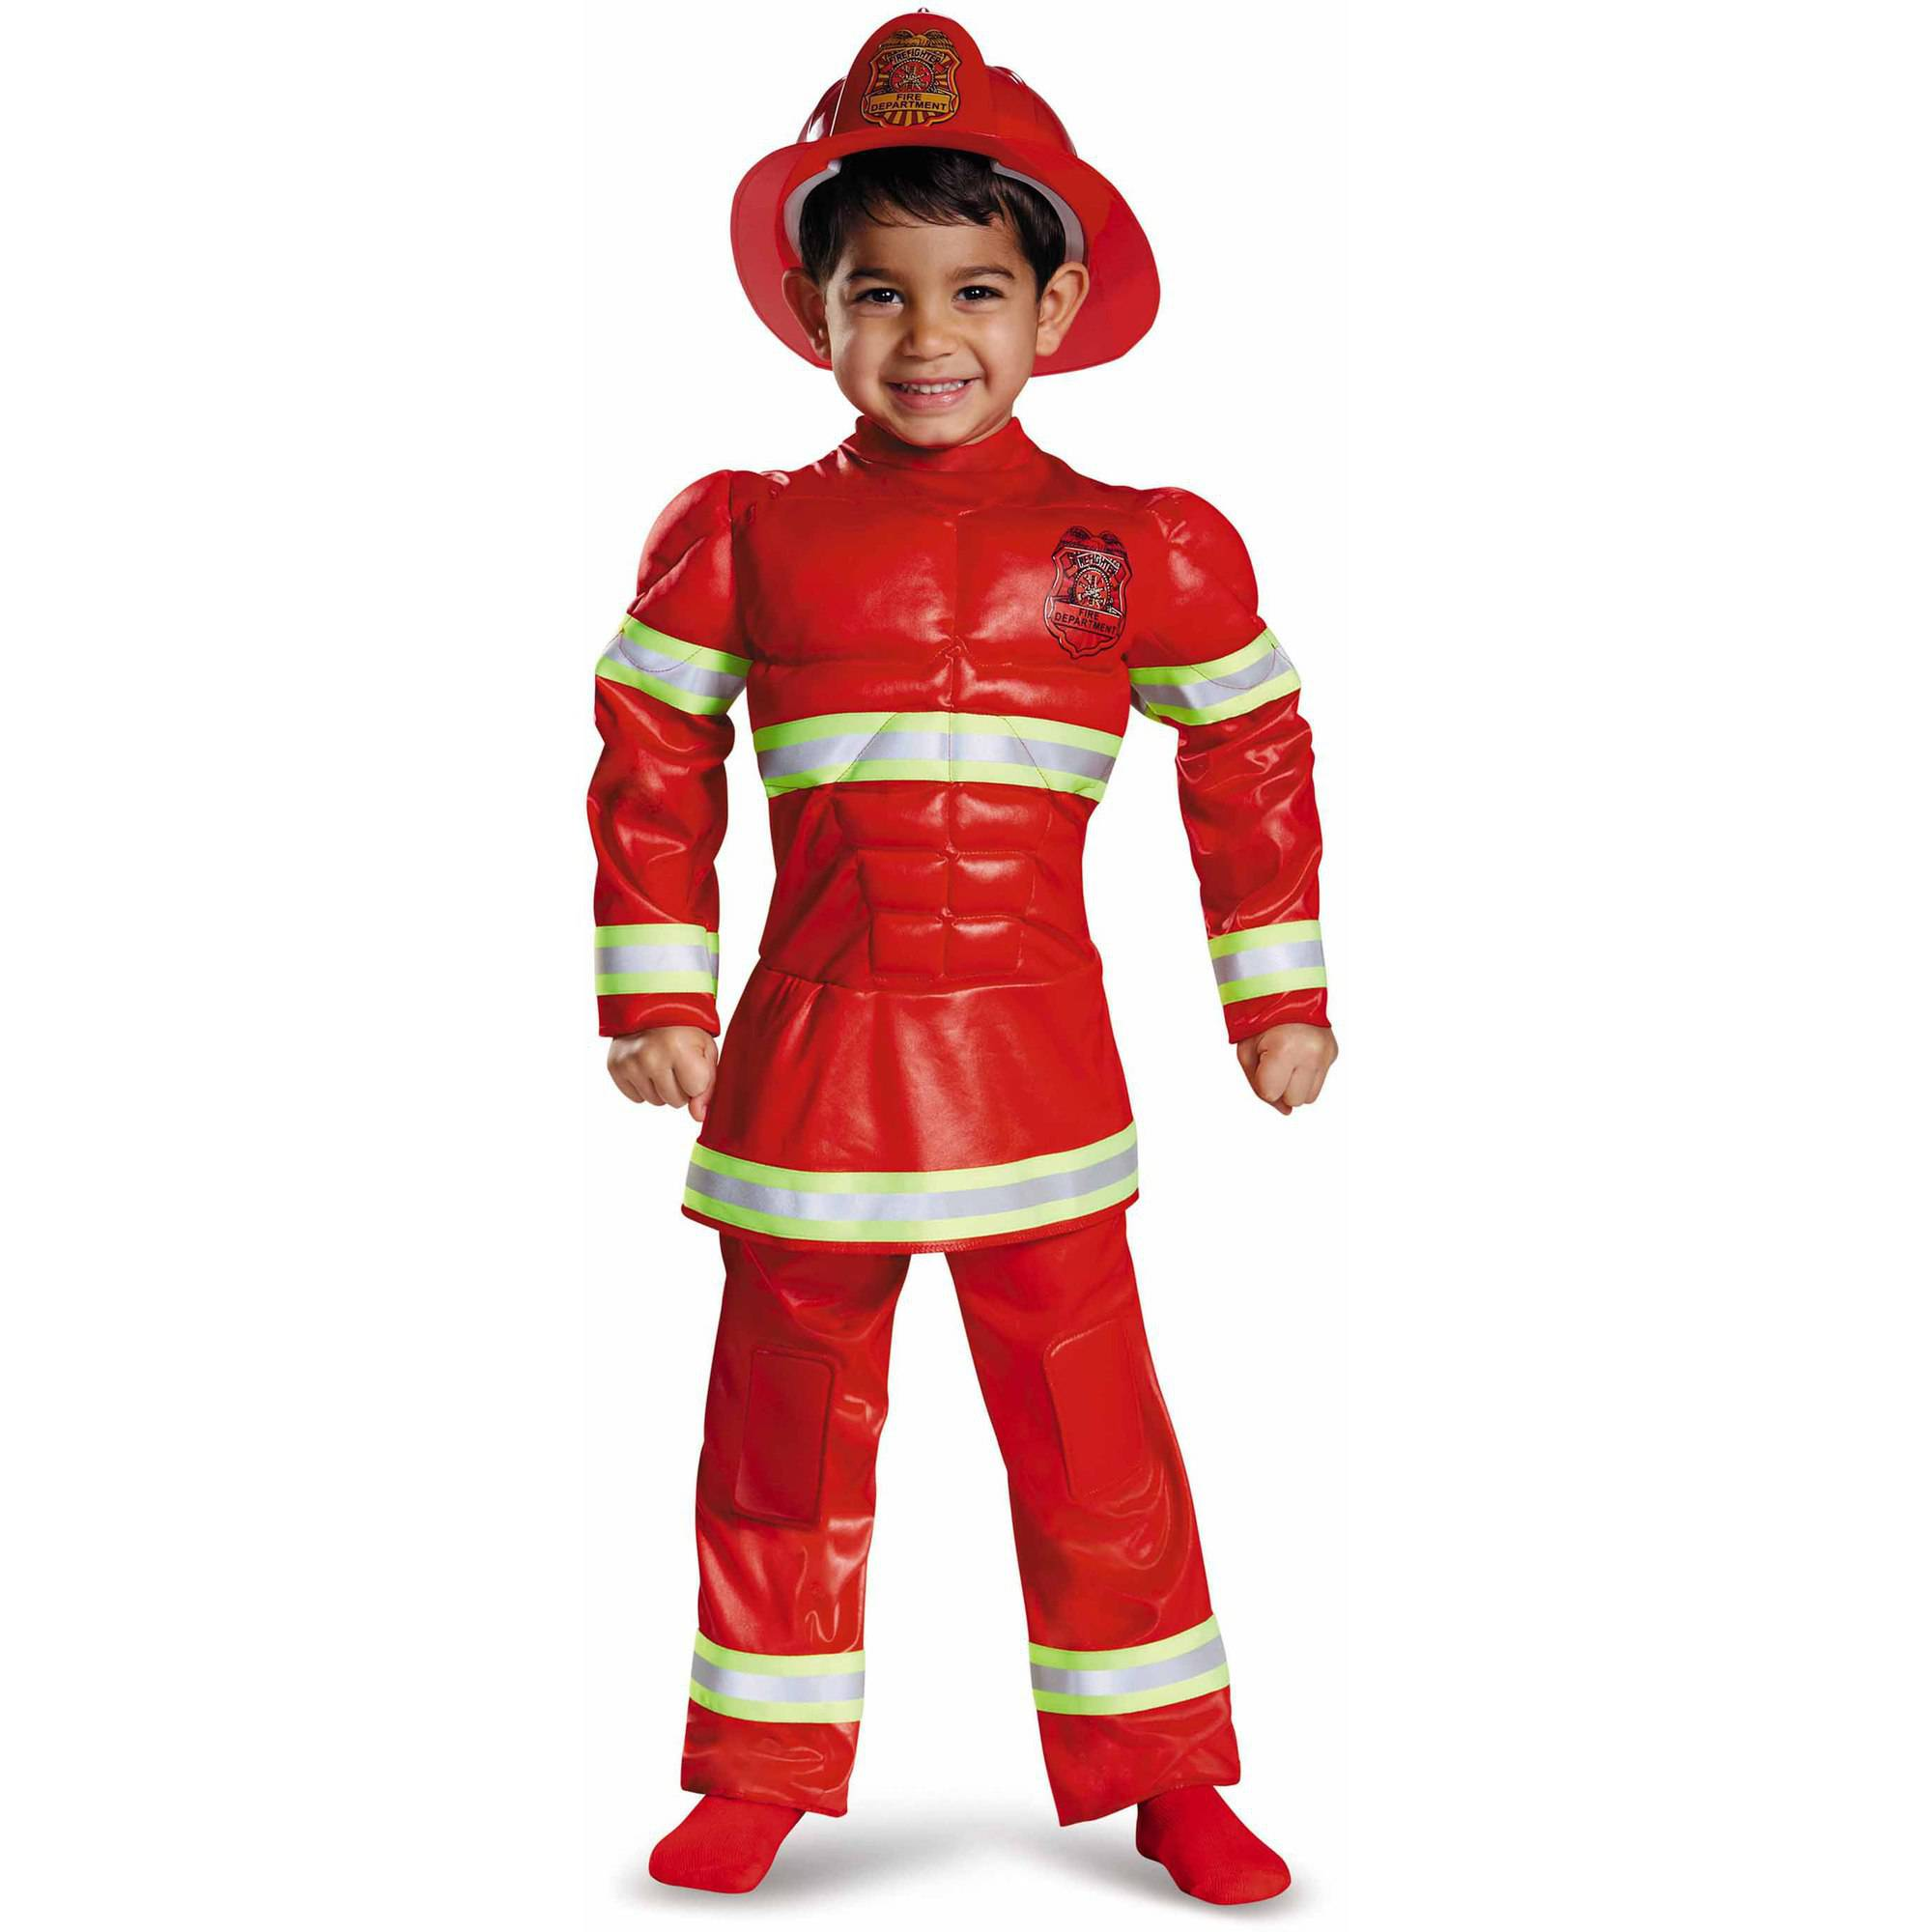 Disguise Red Fireman Toddler Muscle Halloween Costume